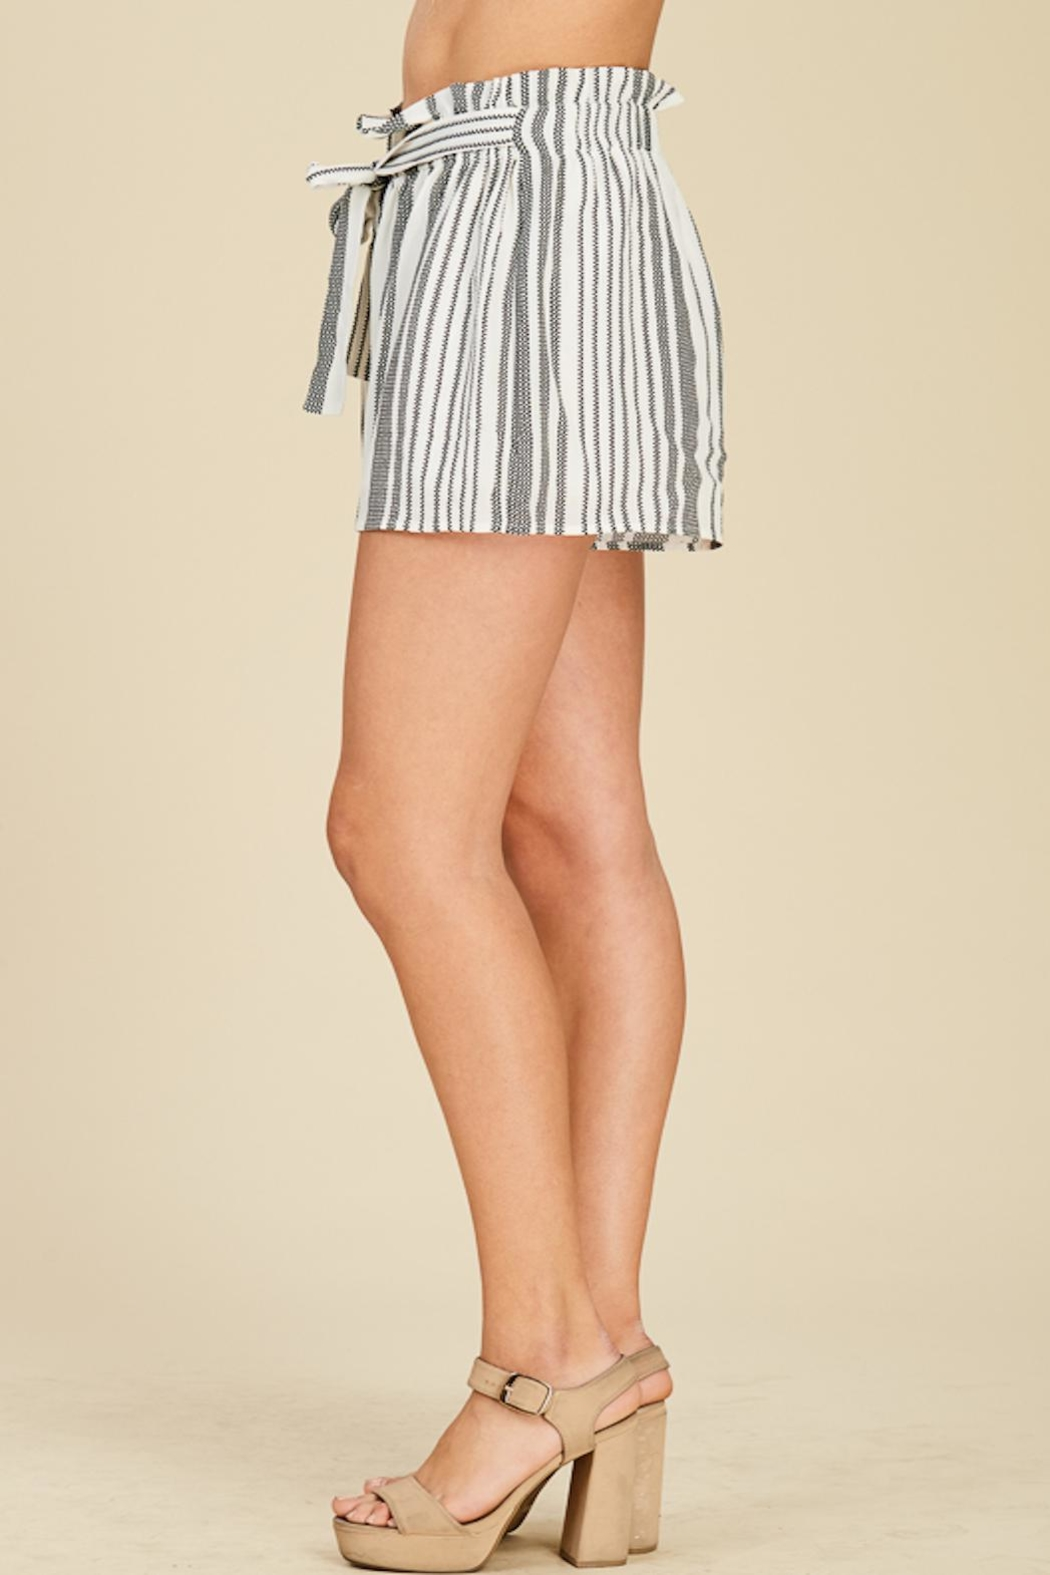 Apricot Lane Striped Bucket Shorts - Front Full Image